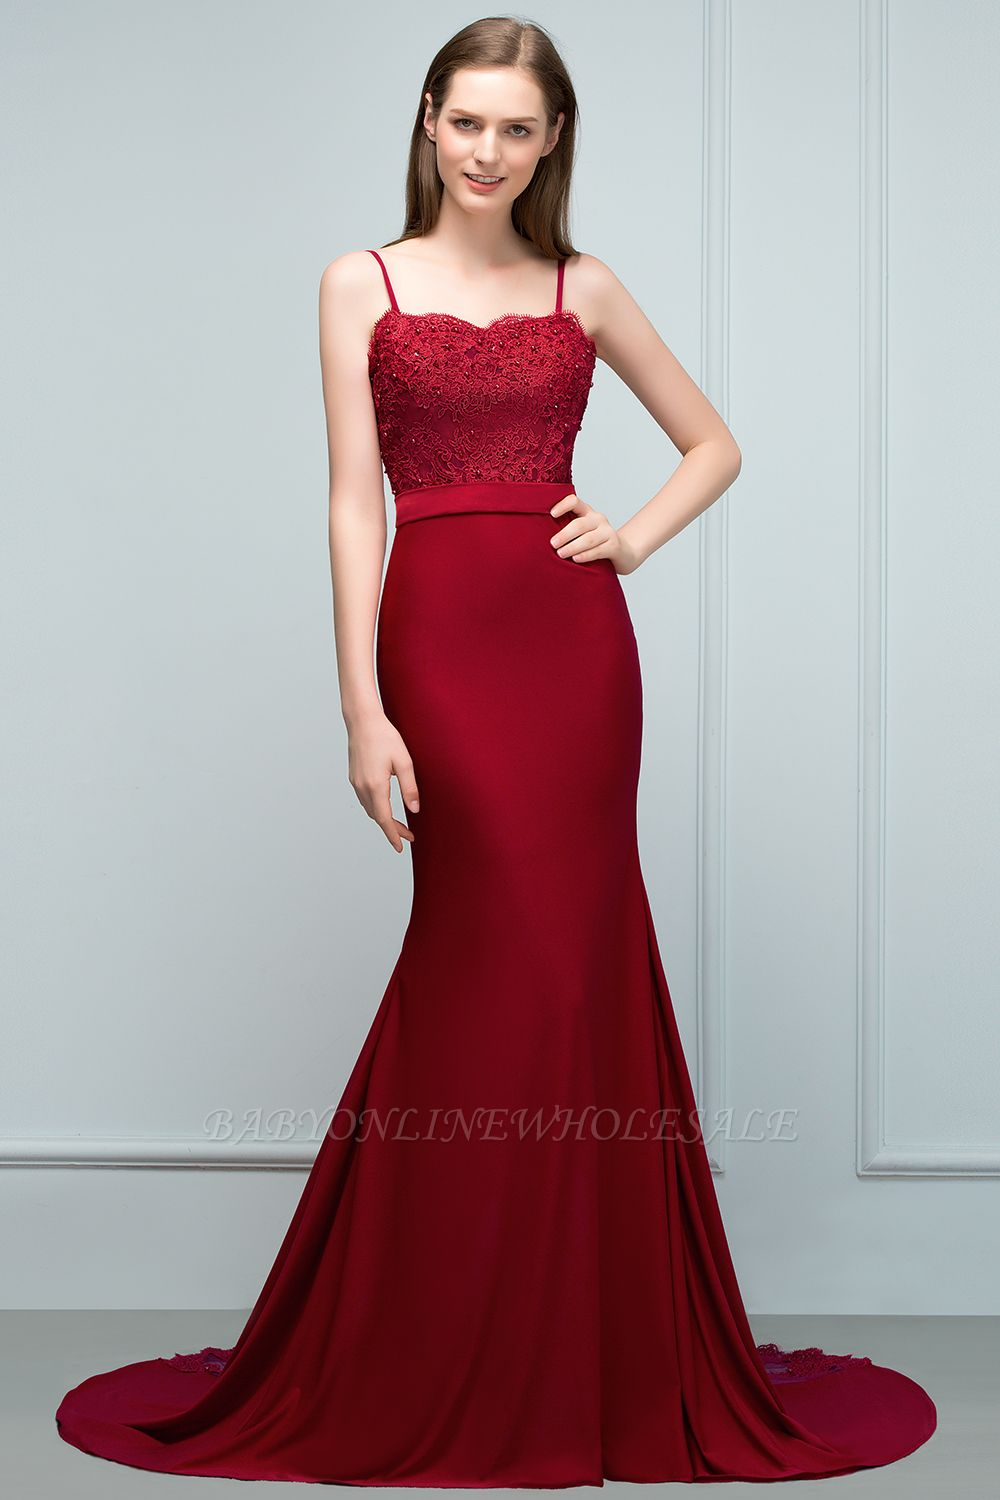 VALERY | Mermaid Spaghetti Sweetheart Long Burgundy Appliques Prom Dresses with Beads